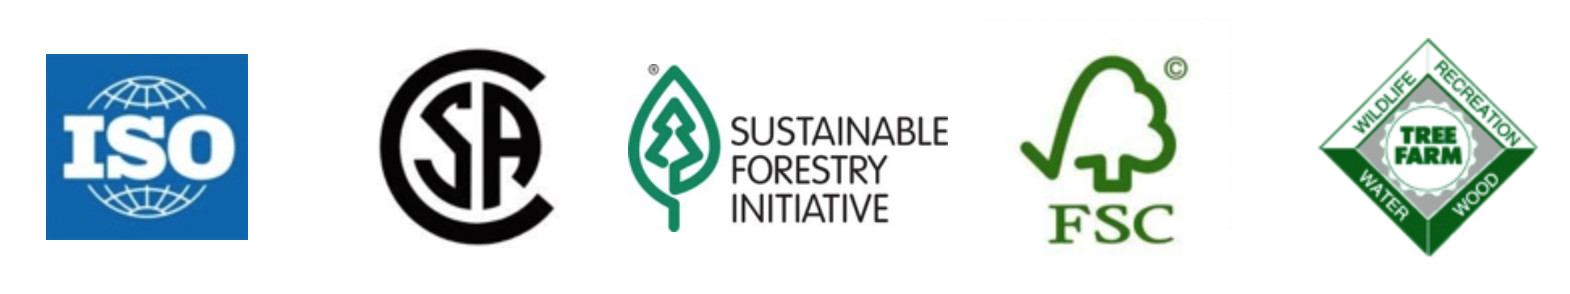 Because when you see the fsc logo, you know the product can be traced back to a company that has been certified by the forest stewardship. Fsc Logo Approval Login